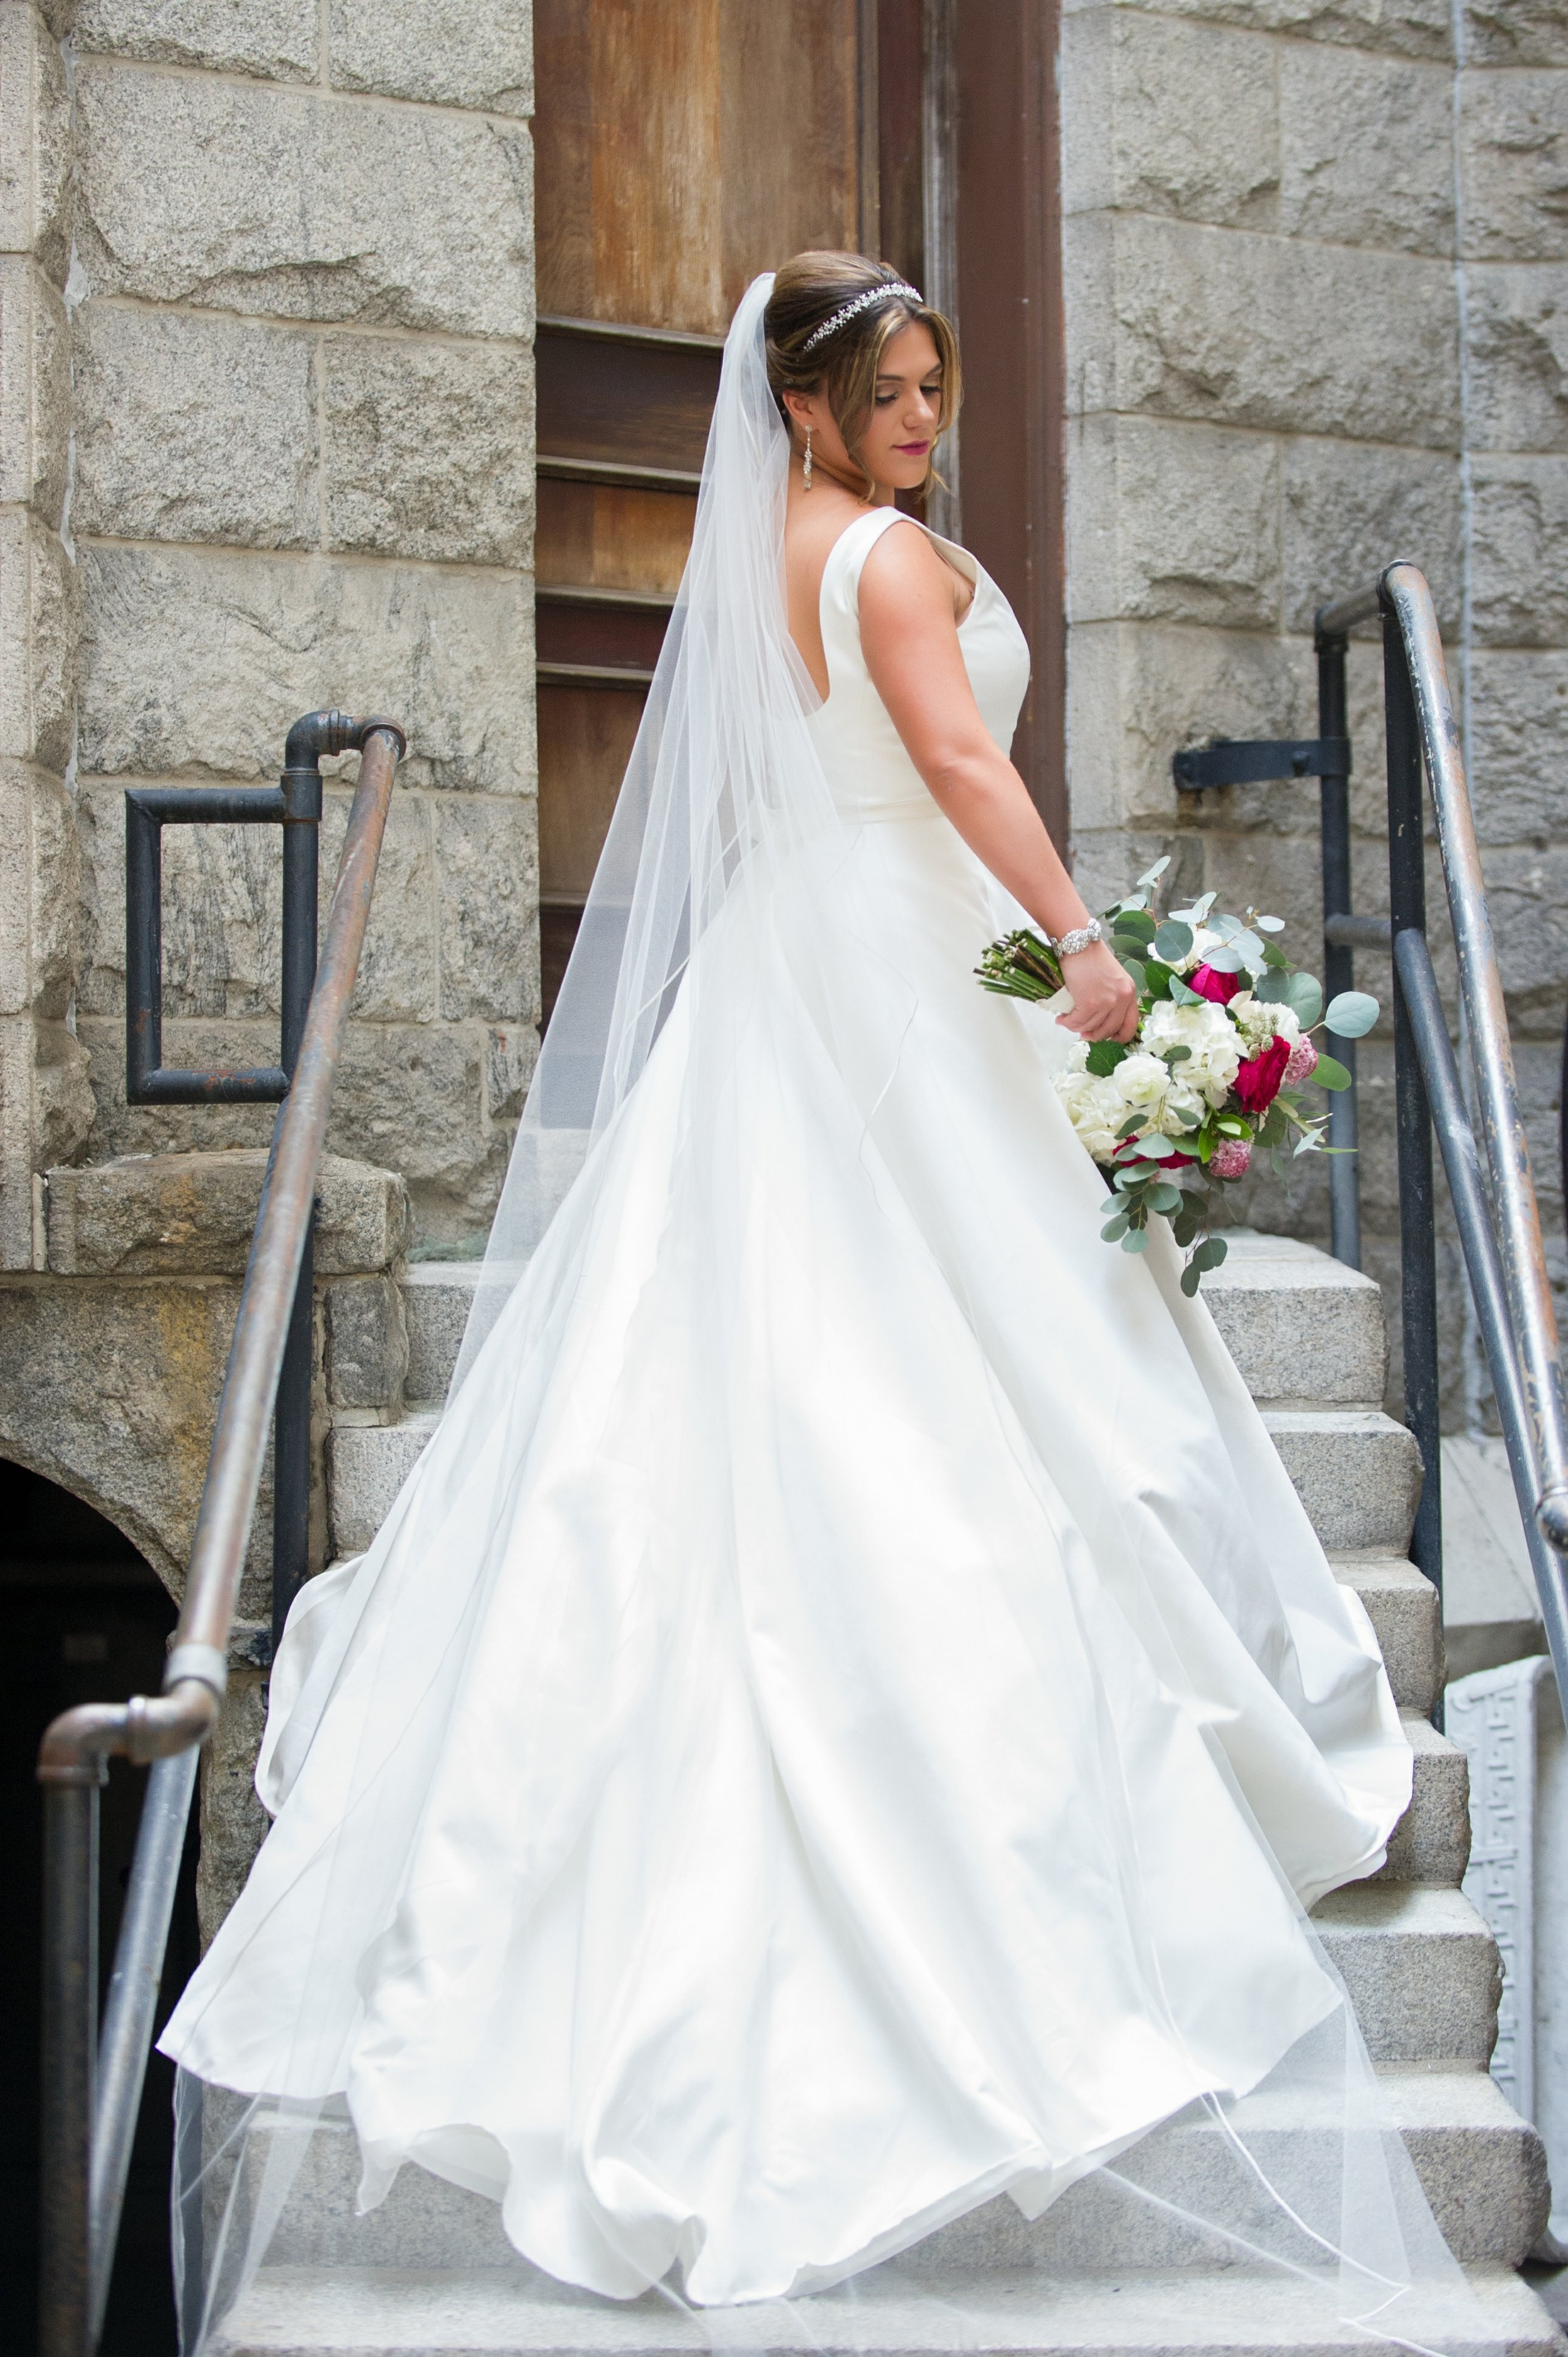 The bride looked simply beautiful in her white gown and cathedral length veil, with delicate crystal accents.